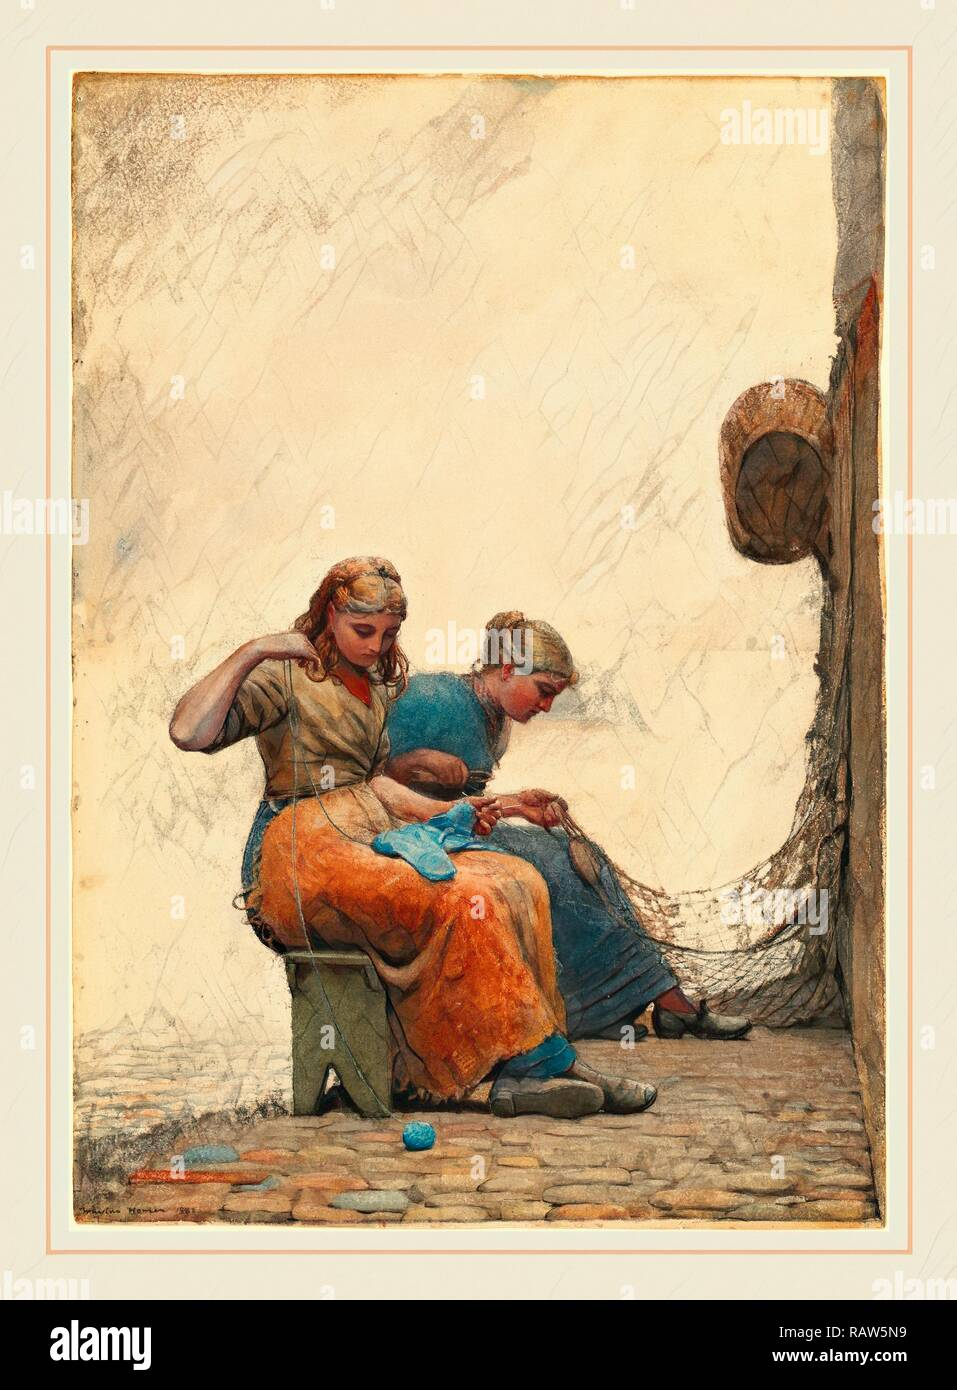 Winslow Homer, American (1836-1910), Mending the Nets, 1882, watercolor and gouache over graphite. Reimagined - Stock Image